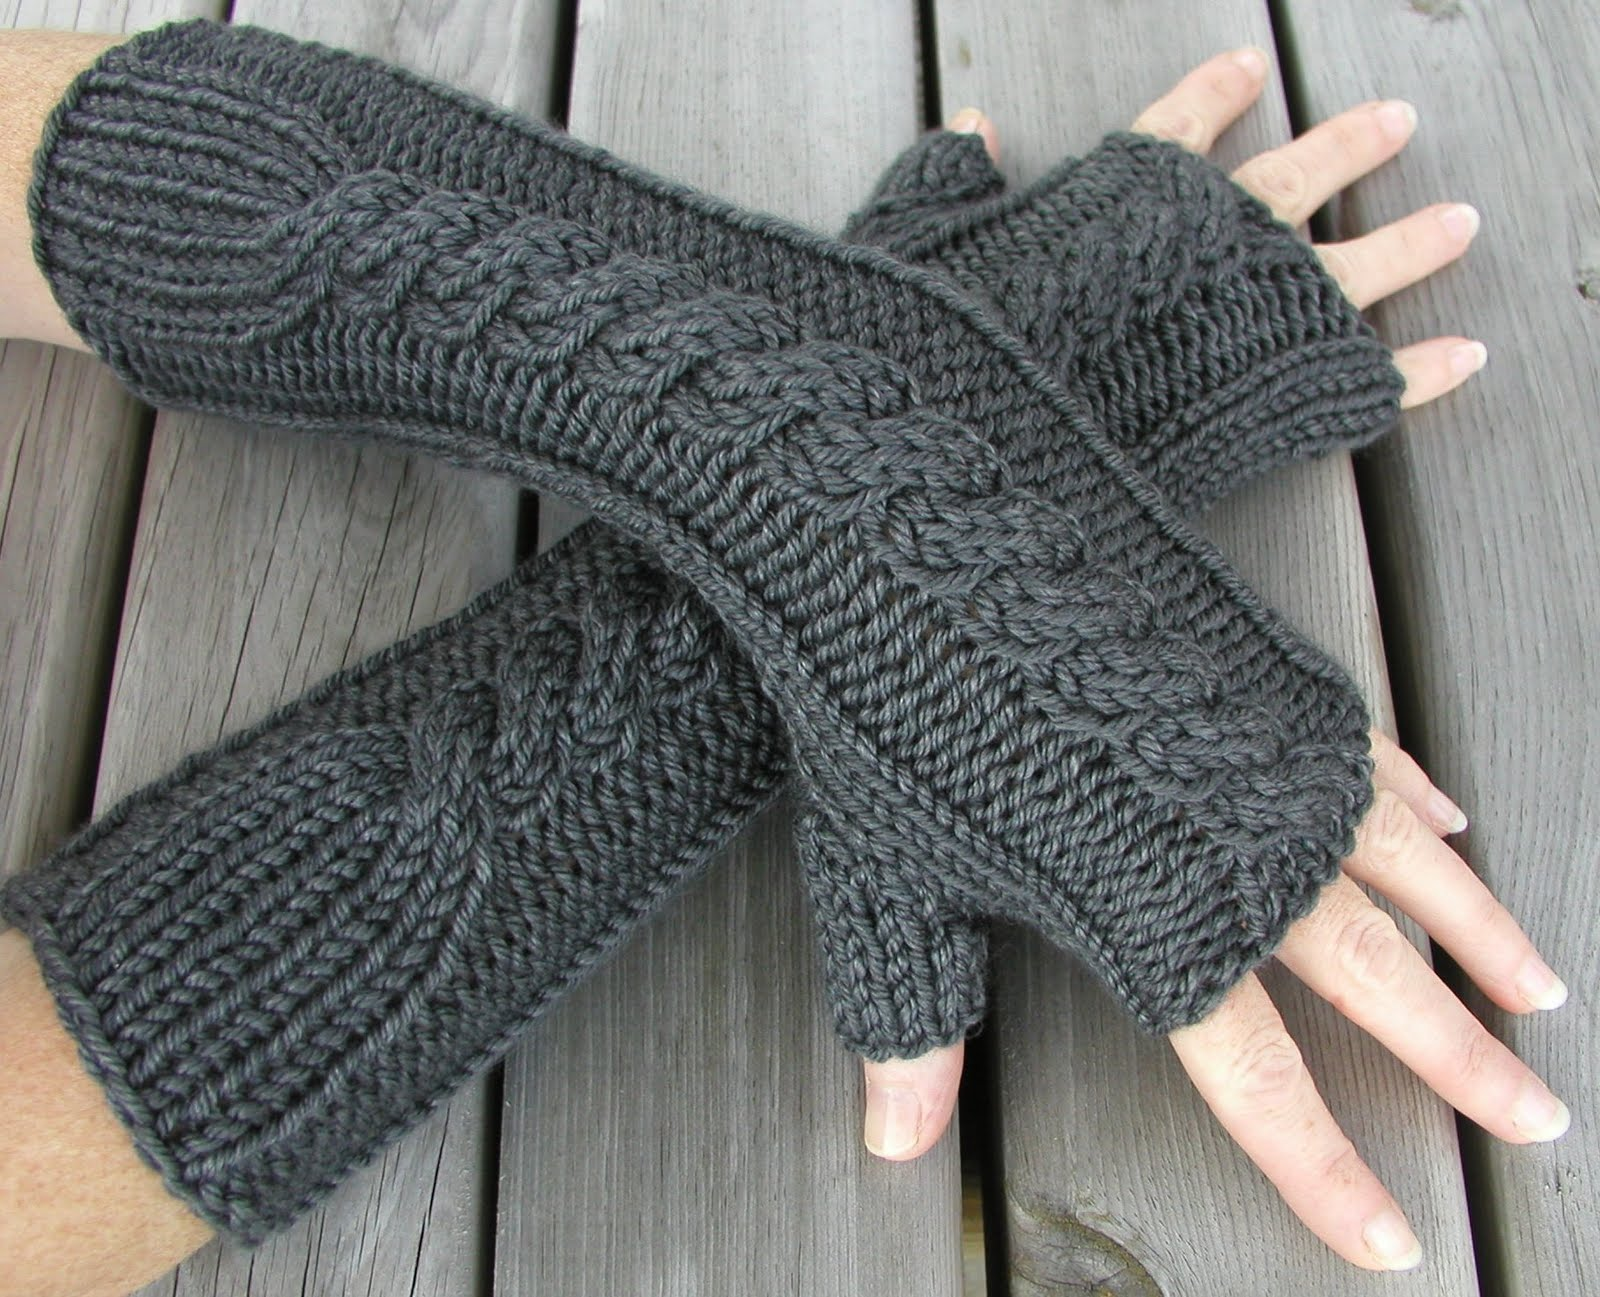 KNITTING PATTERNS FOR HANDWARMERS FREE PATTERNS